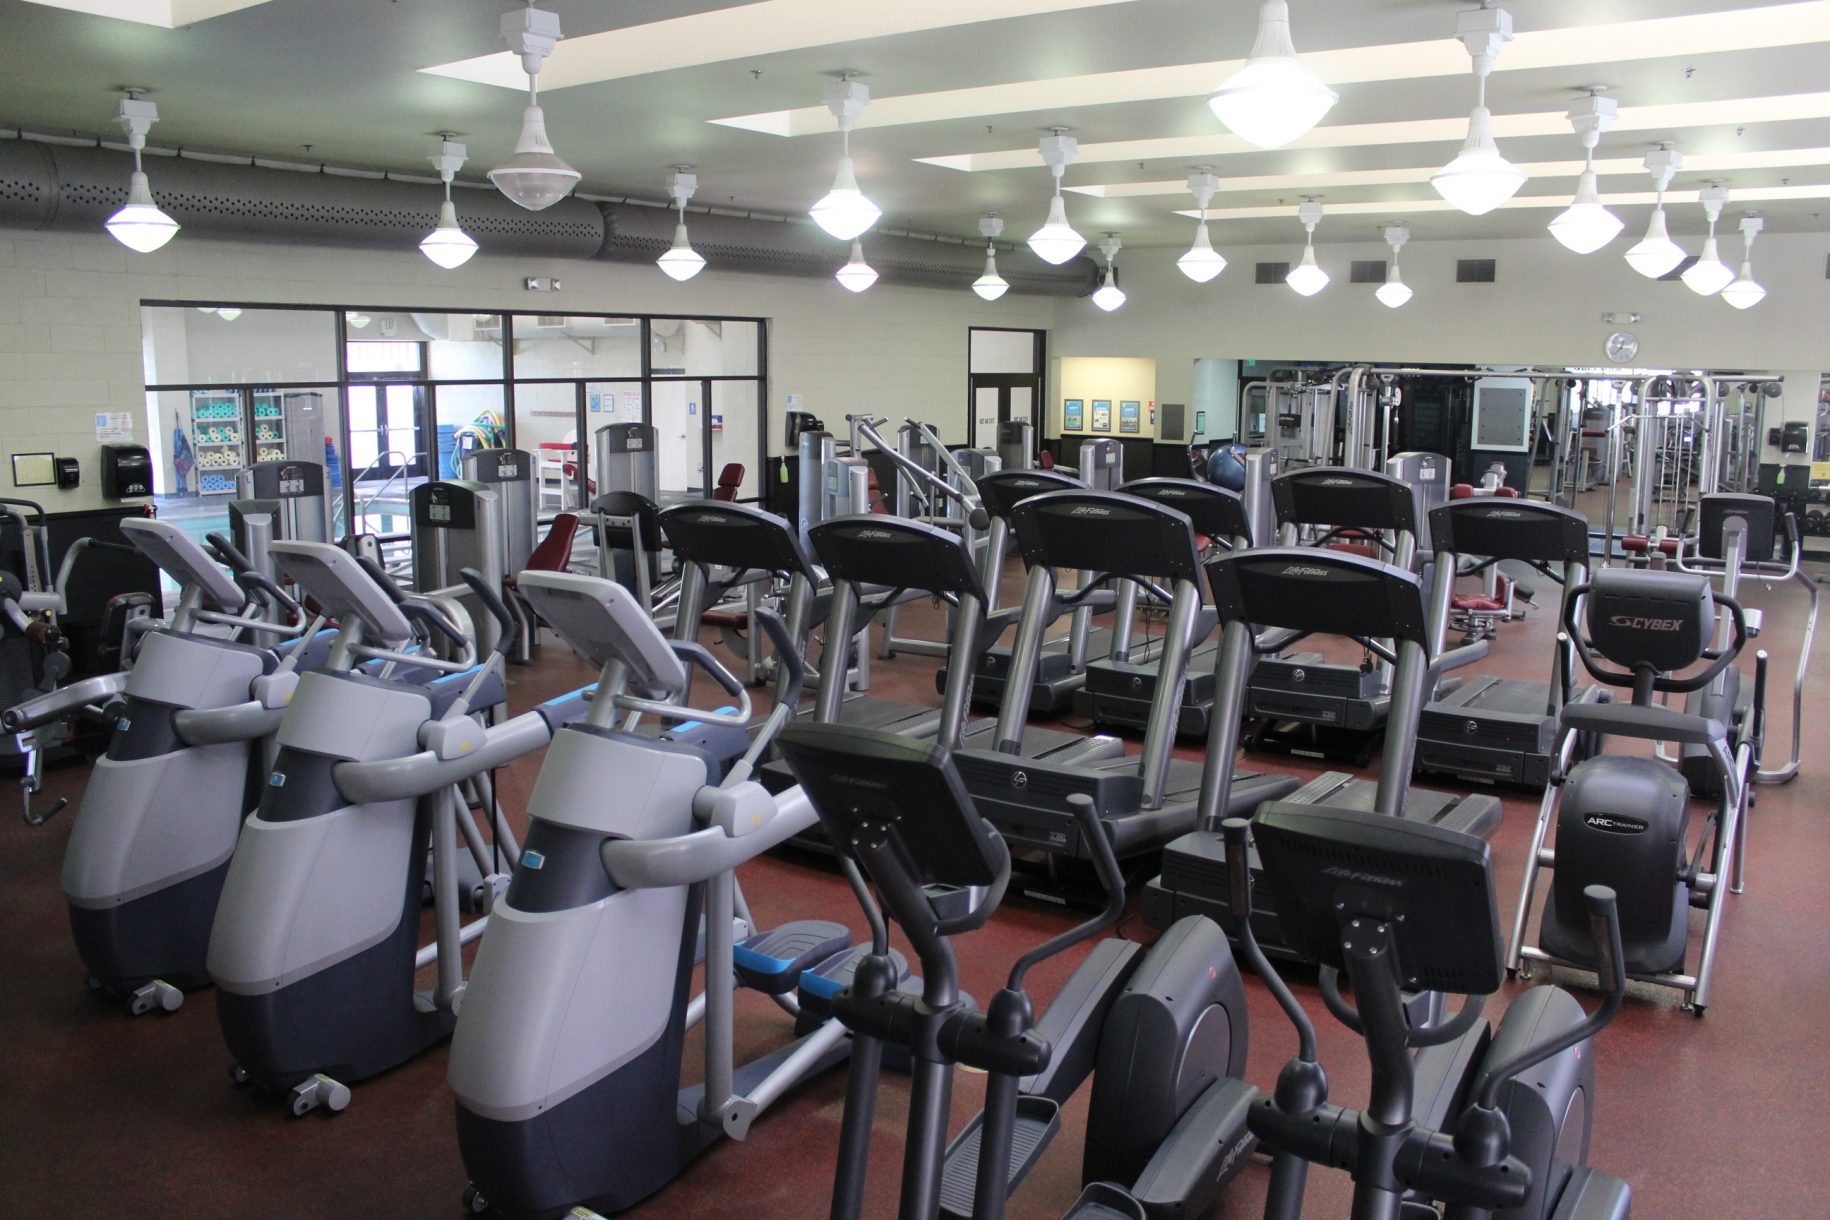 Explore the highland branch ymca of the east valley